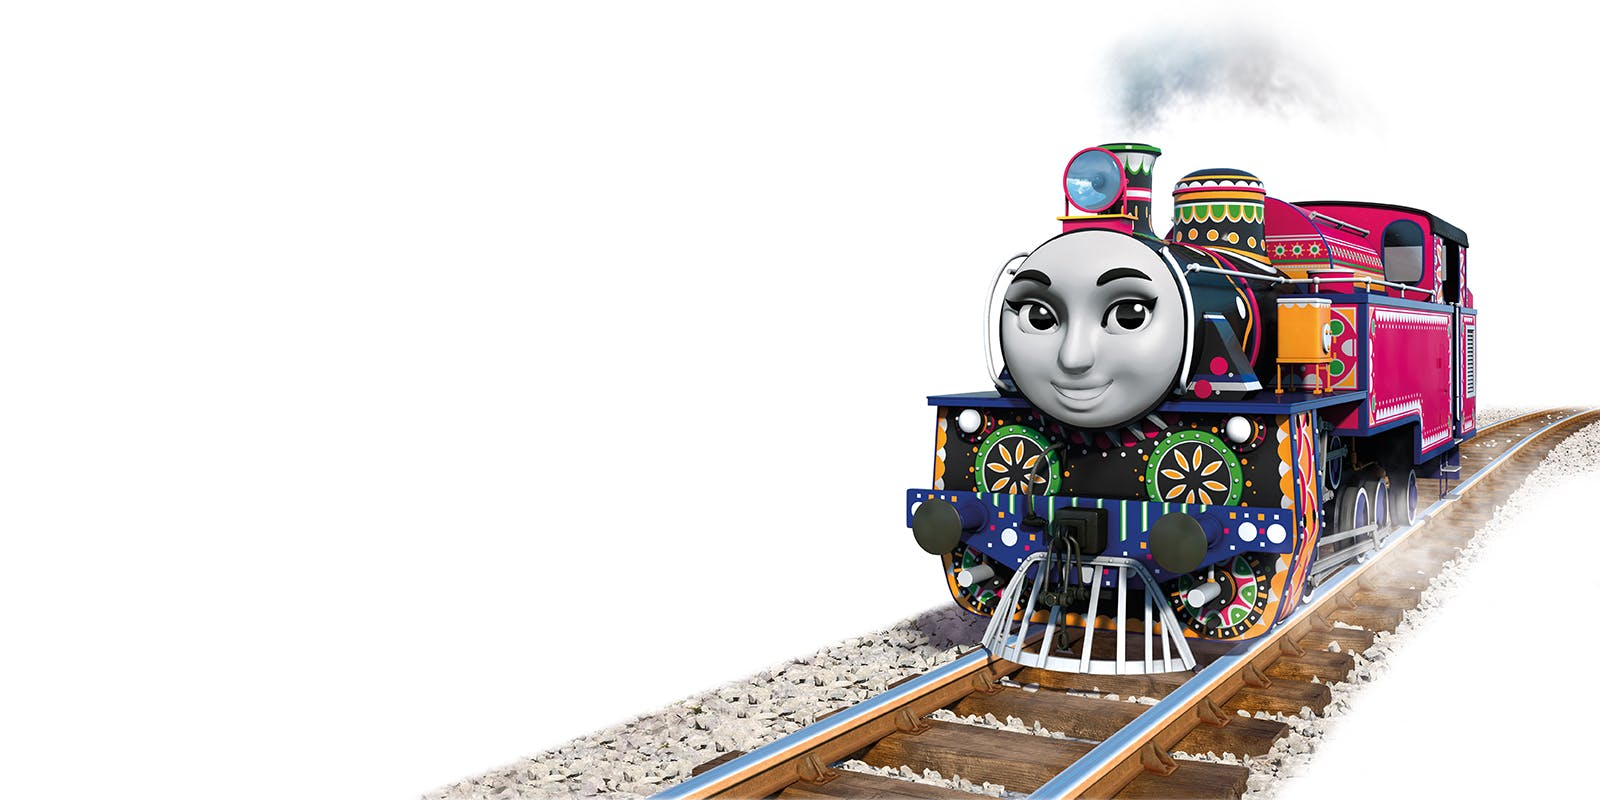 Thomas' friends from around the world